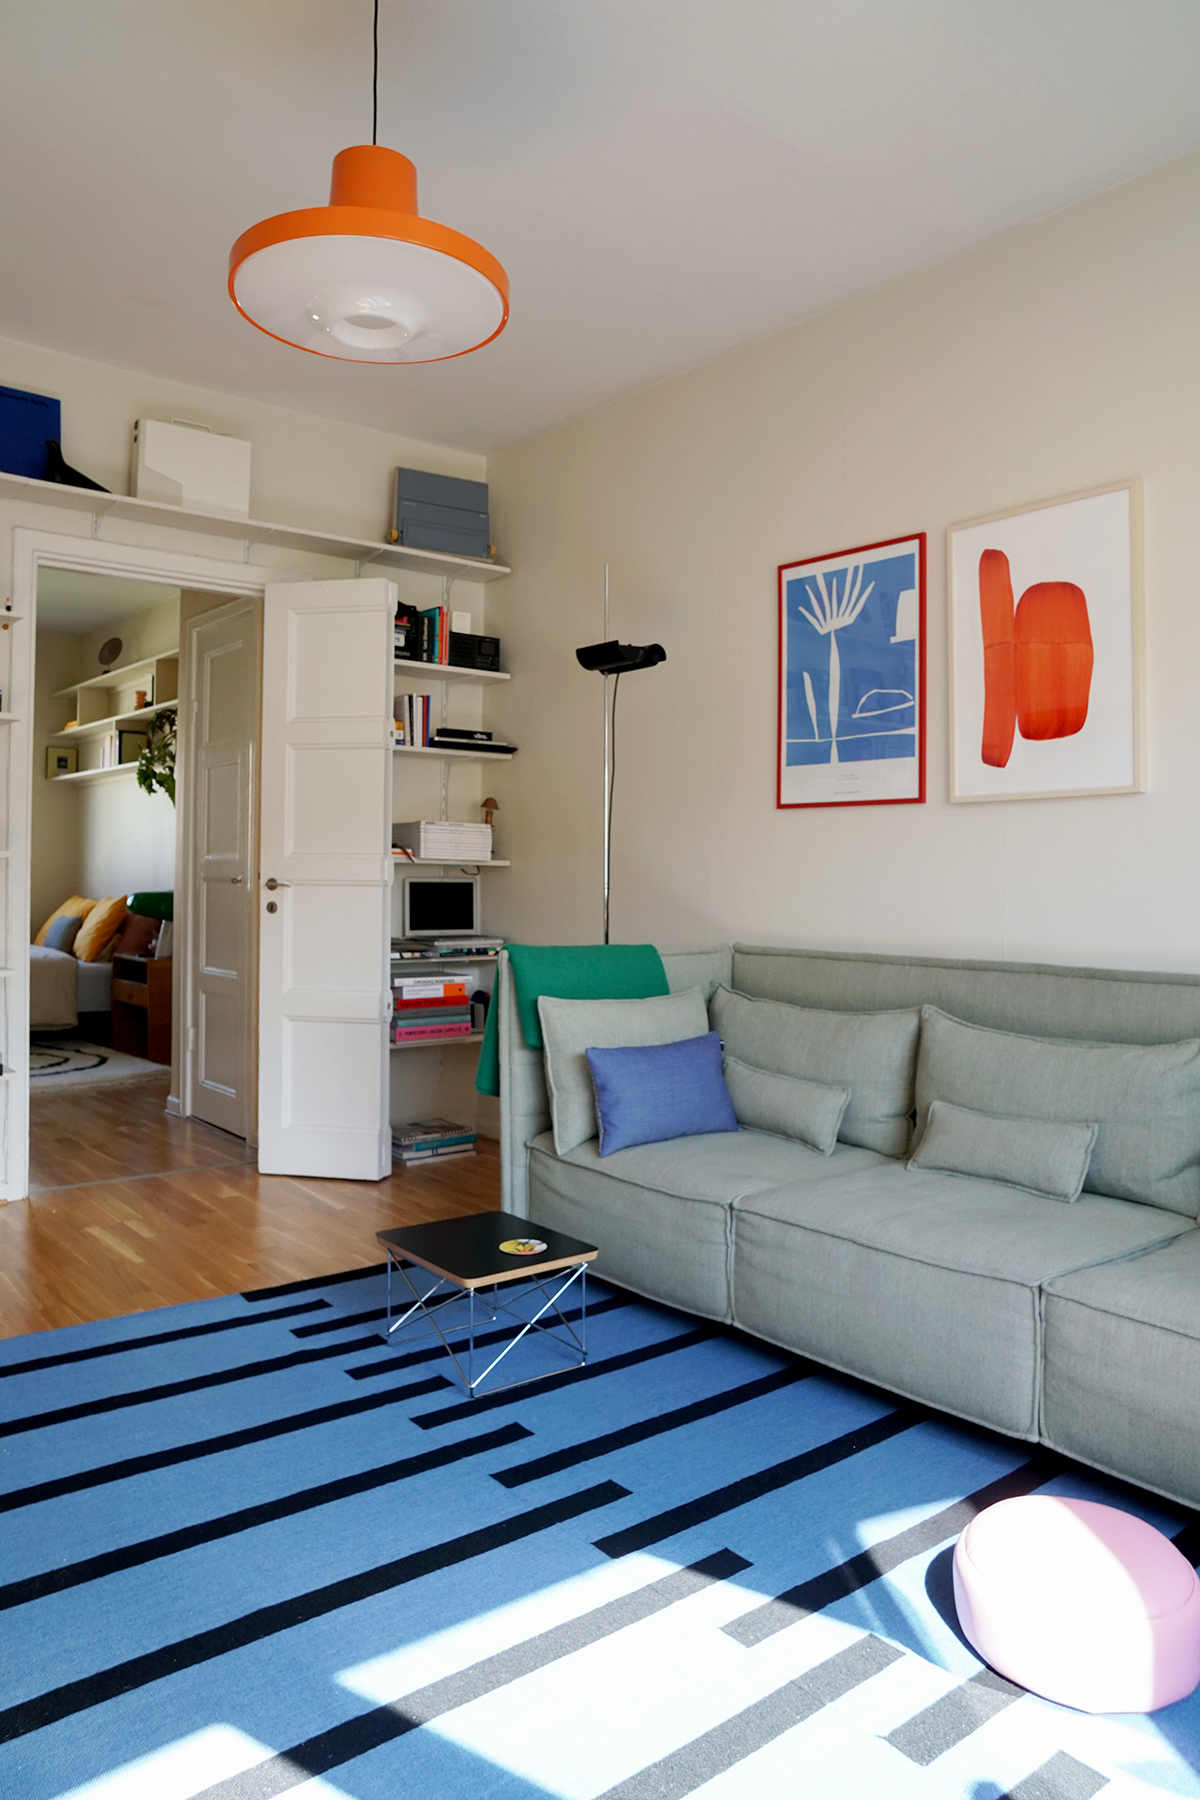 The Tiger rug in Blue and Black in a bright and playful apartment.